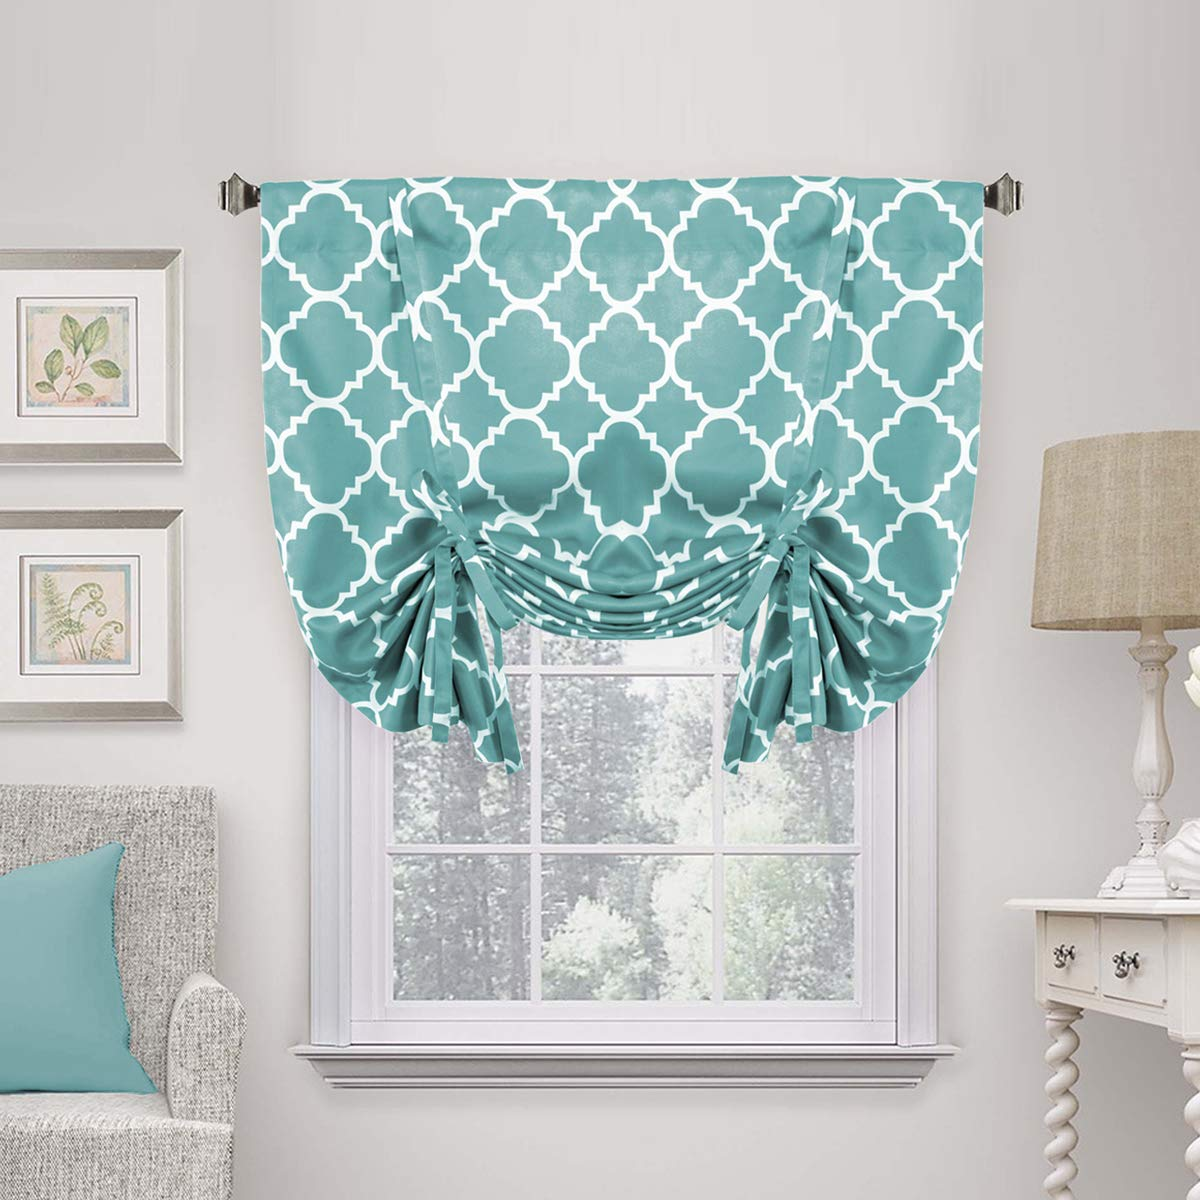 H.VERSAILTEX Rod Pocket Blackout Curtain Tie Up Balloon Shade Window Panels for Living Room/Bedroom Printed Smoke Blue Pattern 42W x 63 One Panel